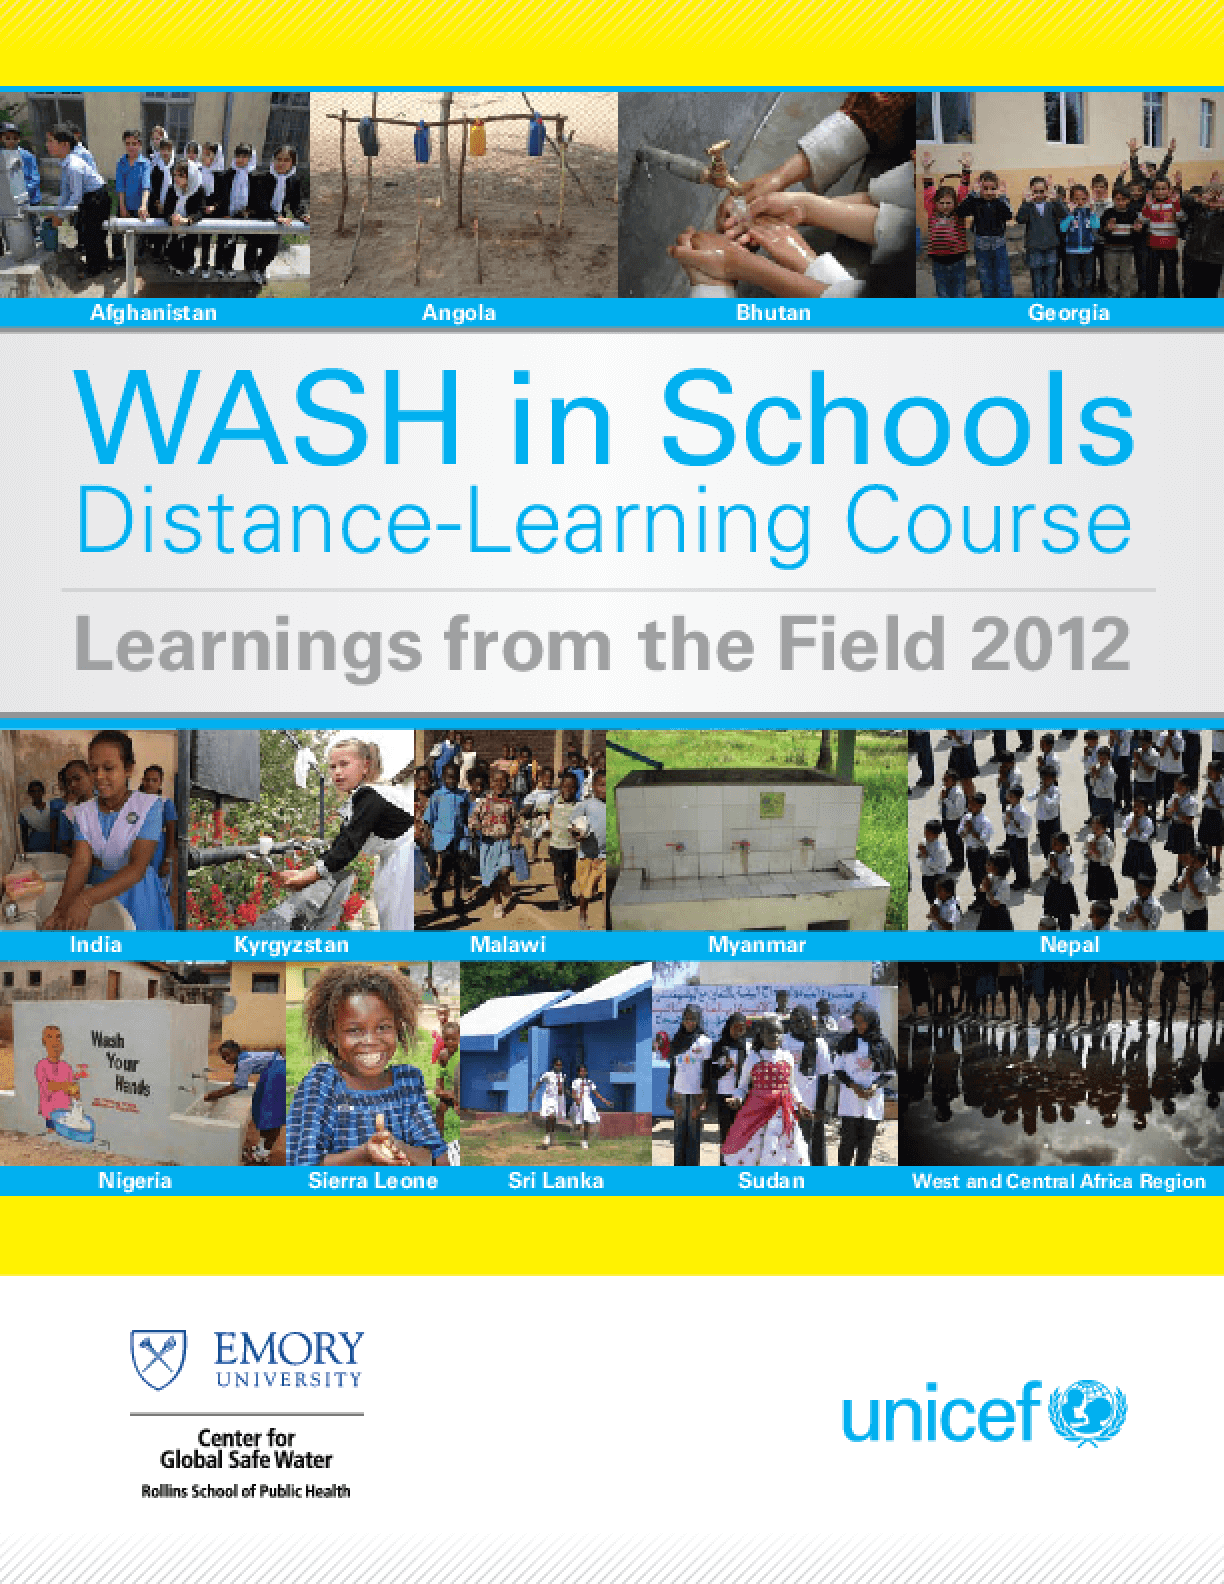 WASH in Schools Distance Learning Course: Learnings from the Field 2012